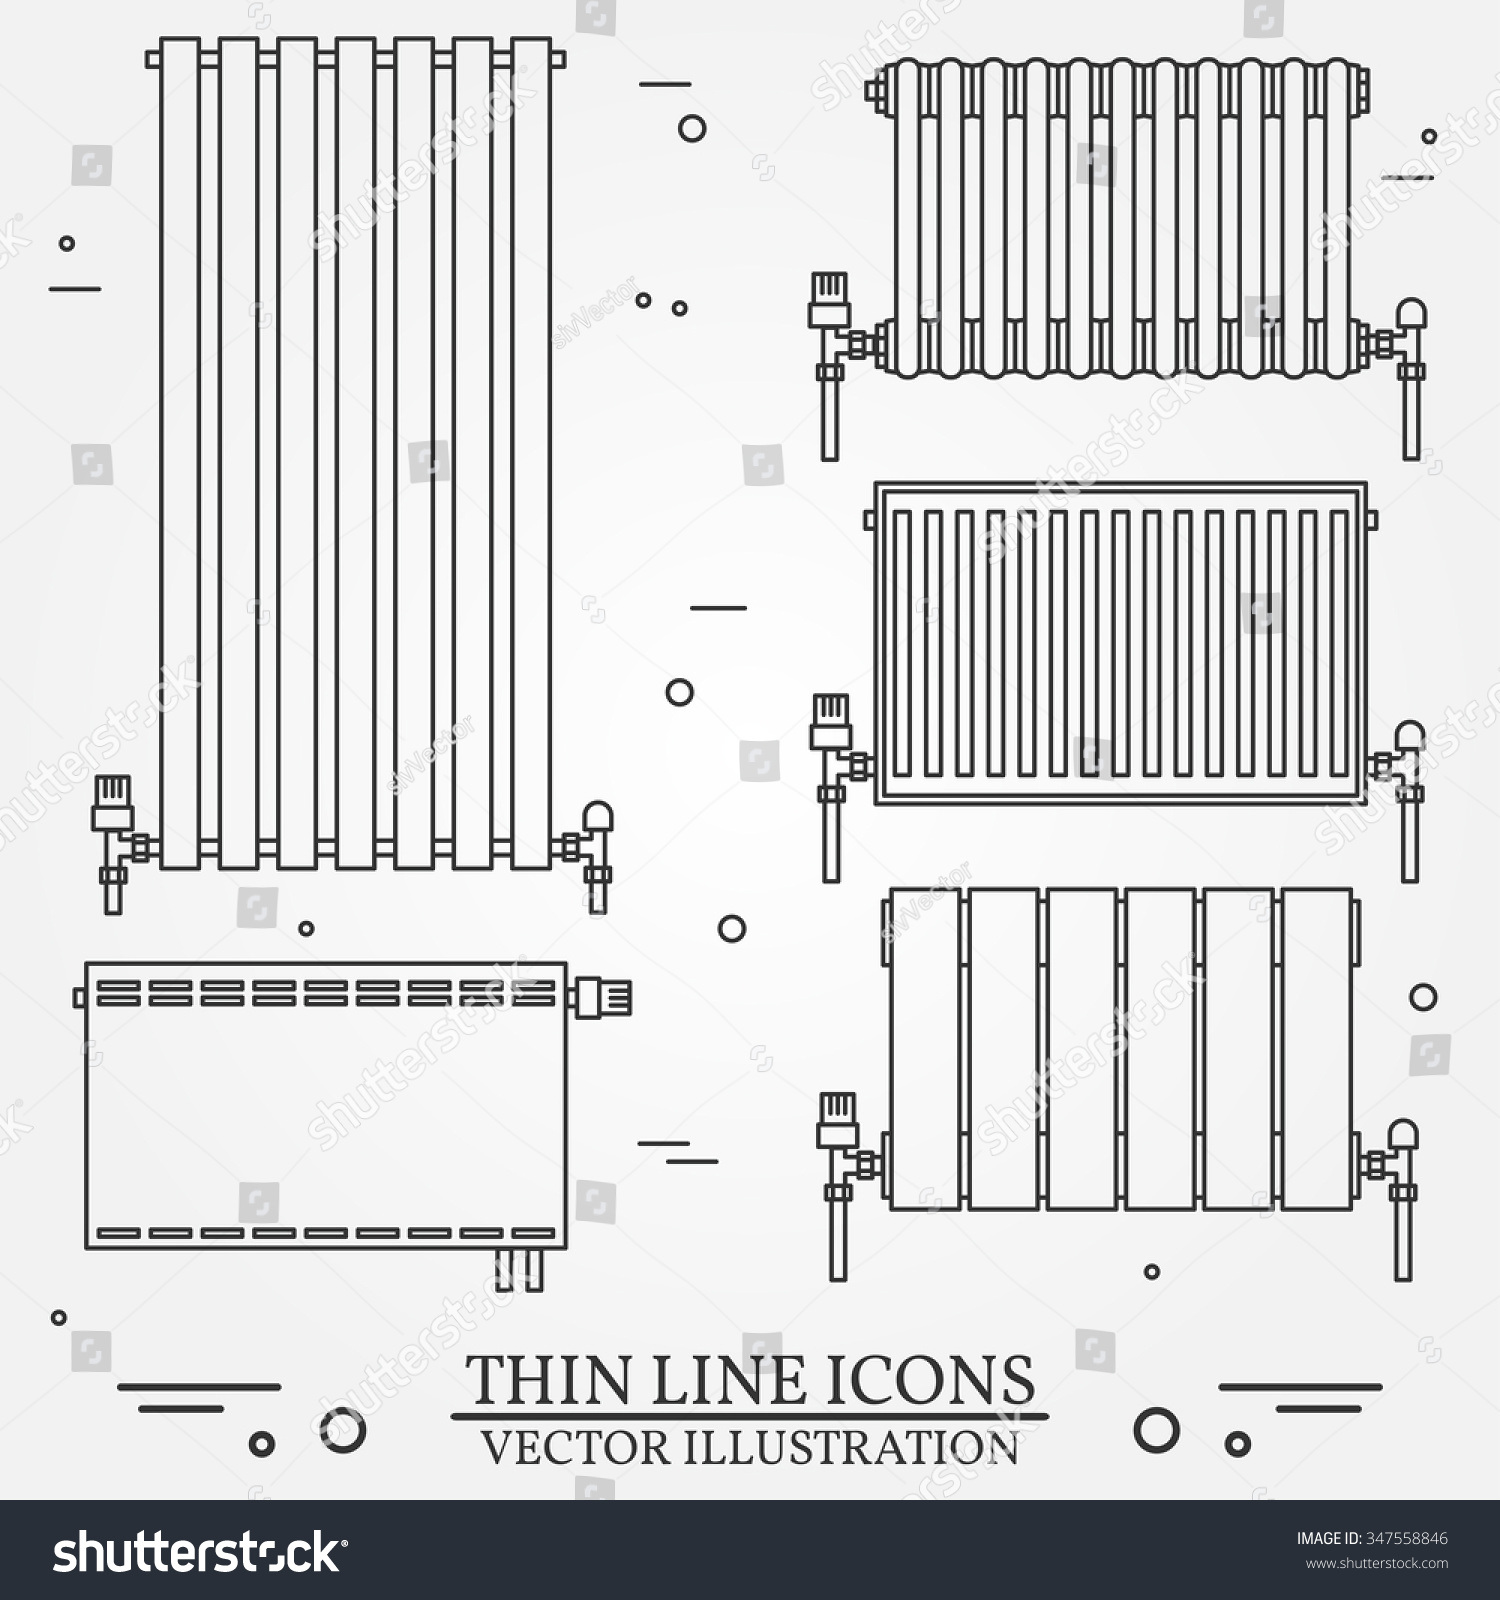 entral Heating adiators Icons hin Line Stock Vector 347558846 ... - ^